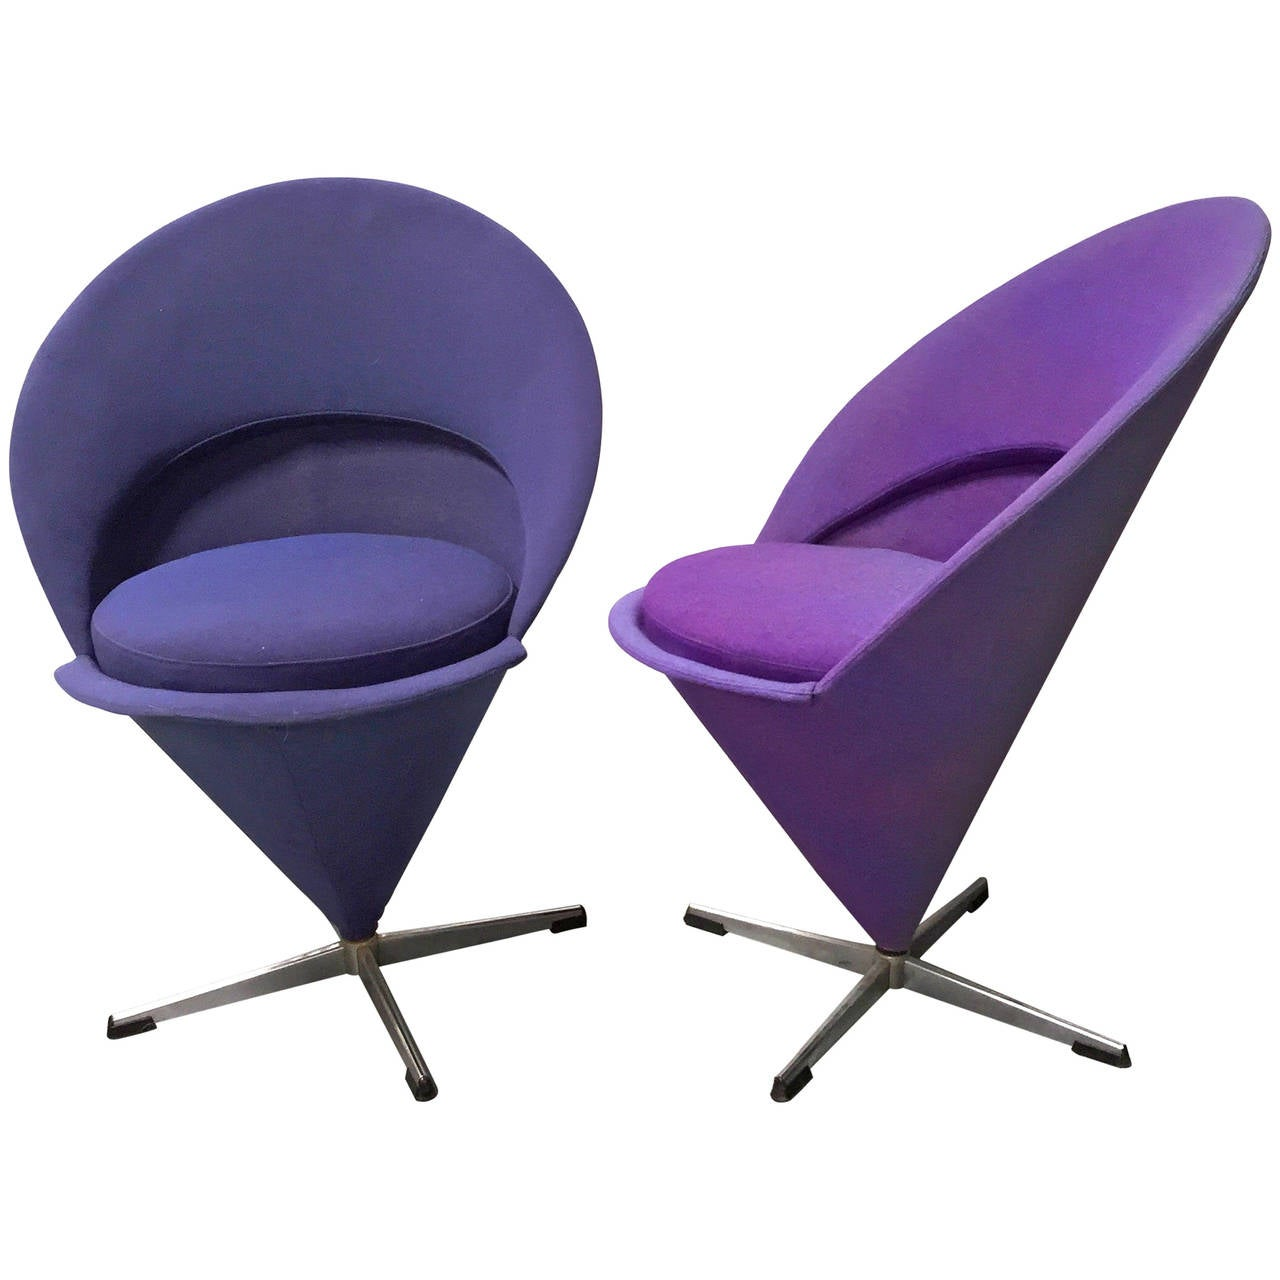 pair of verner panton cone chairs at 1stdibs. Black Bedroom Furniture Sets. Home Design Ideas